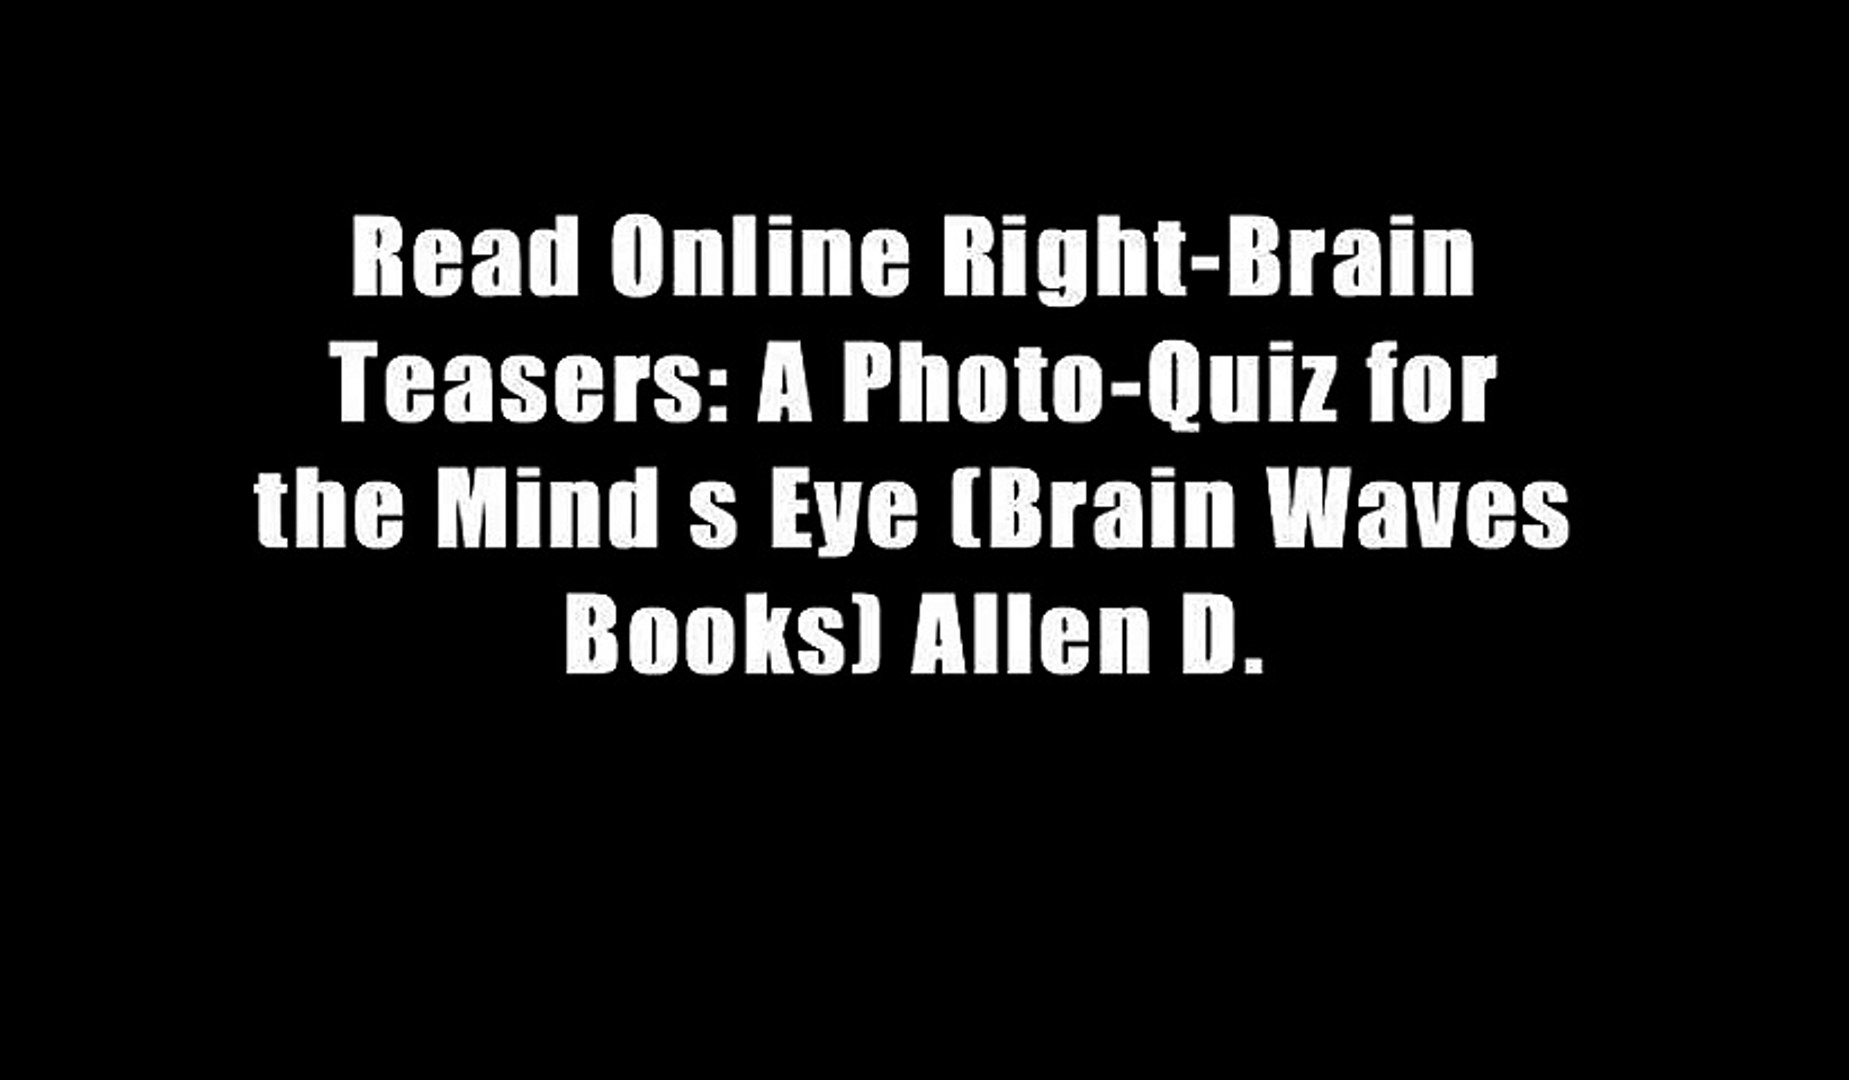 Read Online Right-Brain Teasers: A Photo-Quiz for the Mind s Eye (Brain Waves Books) Allen D.